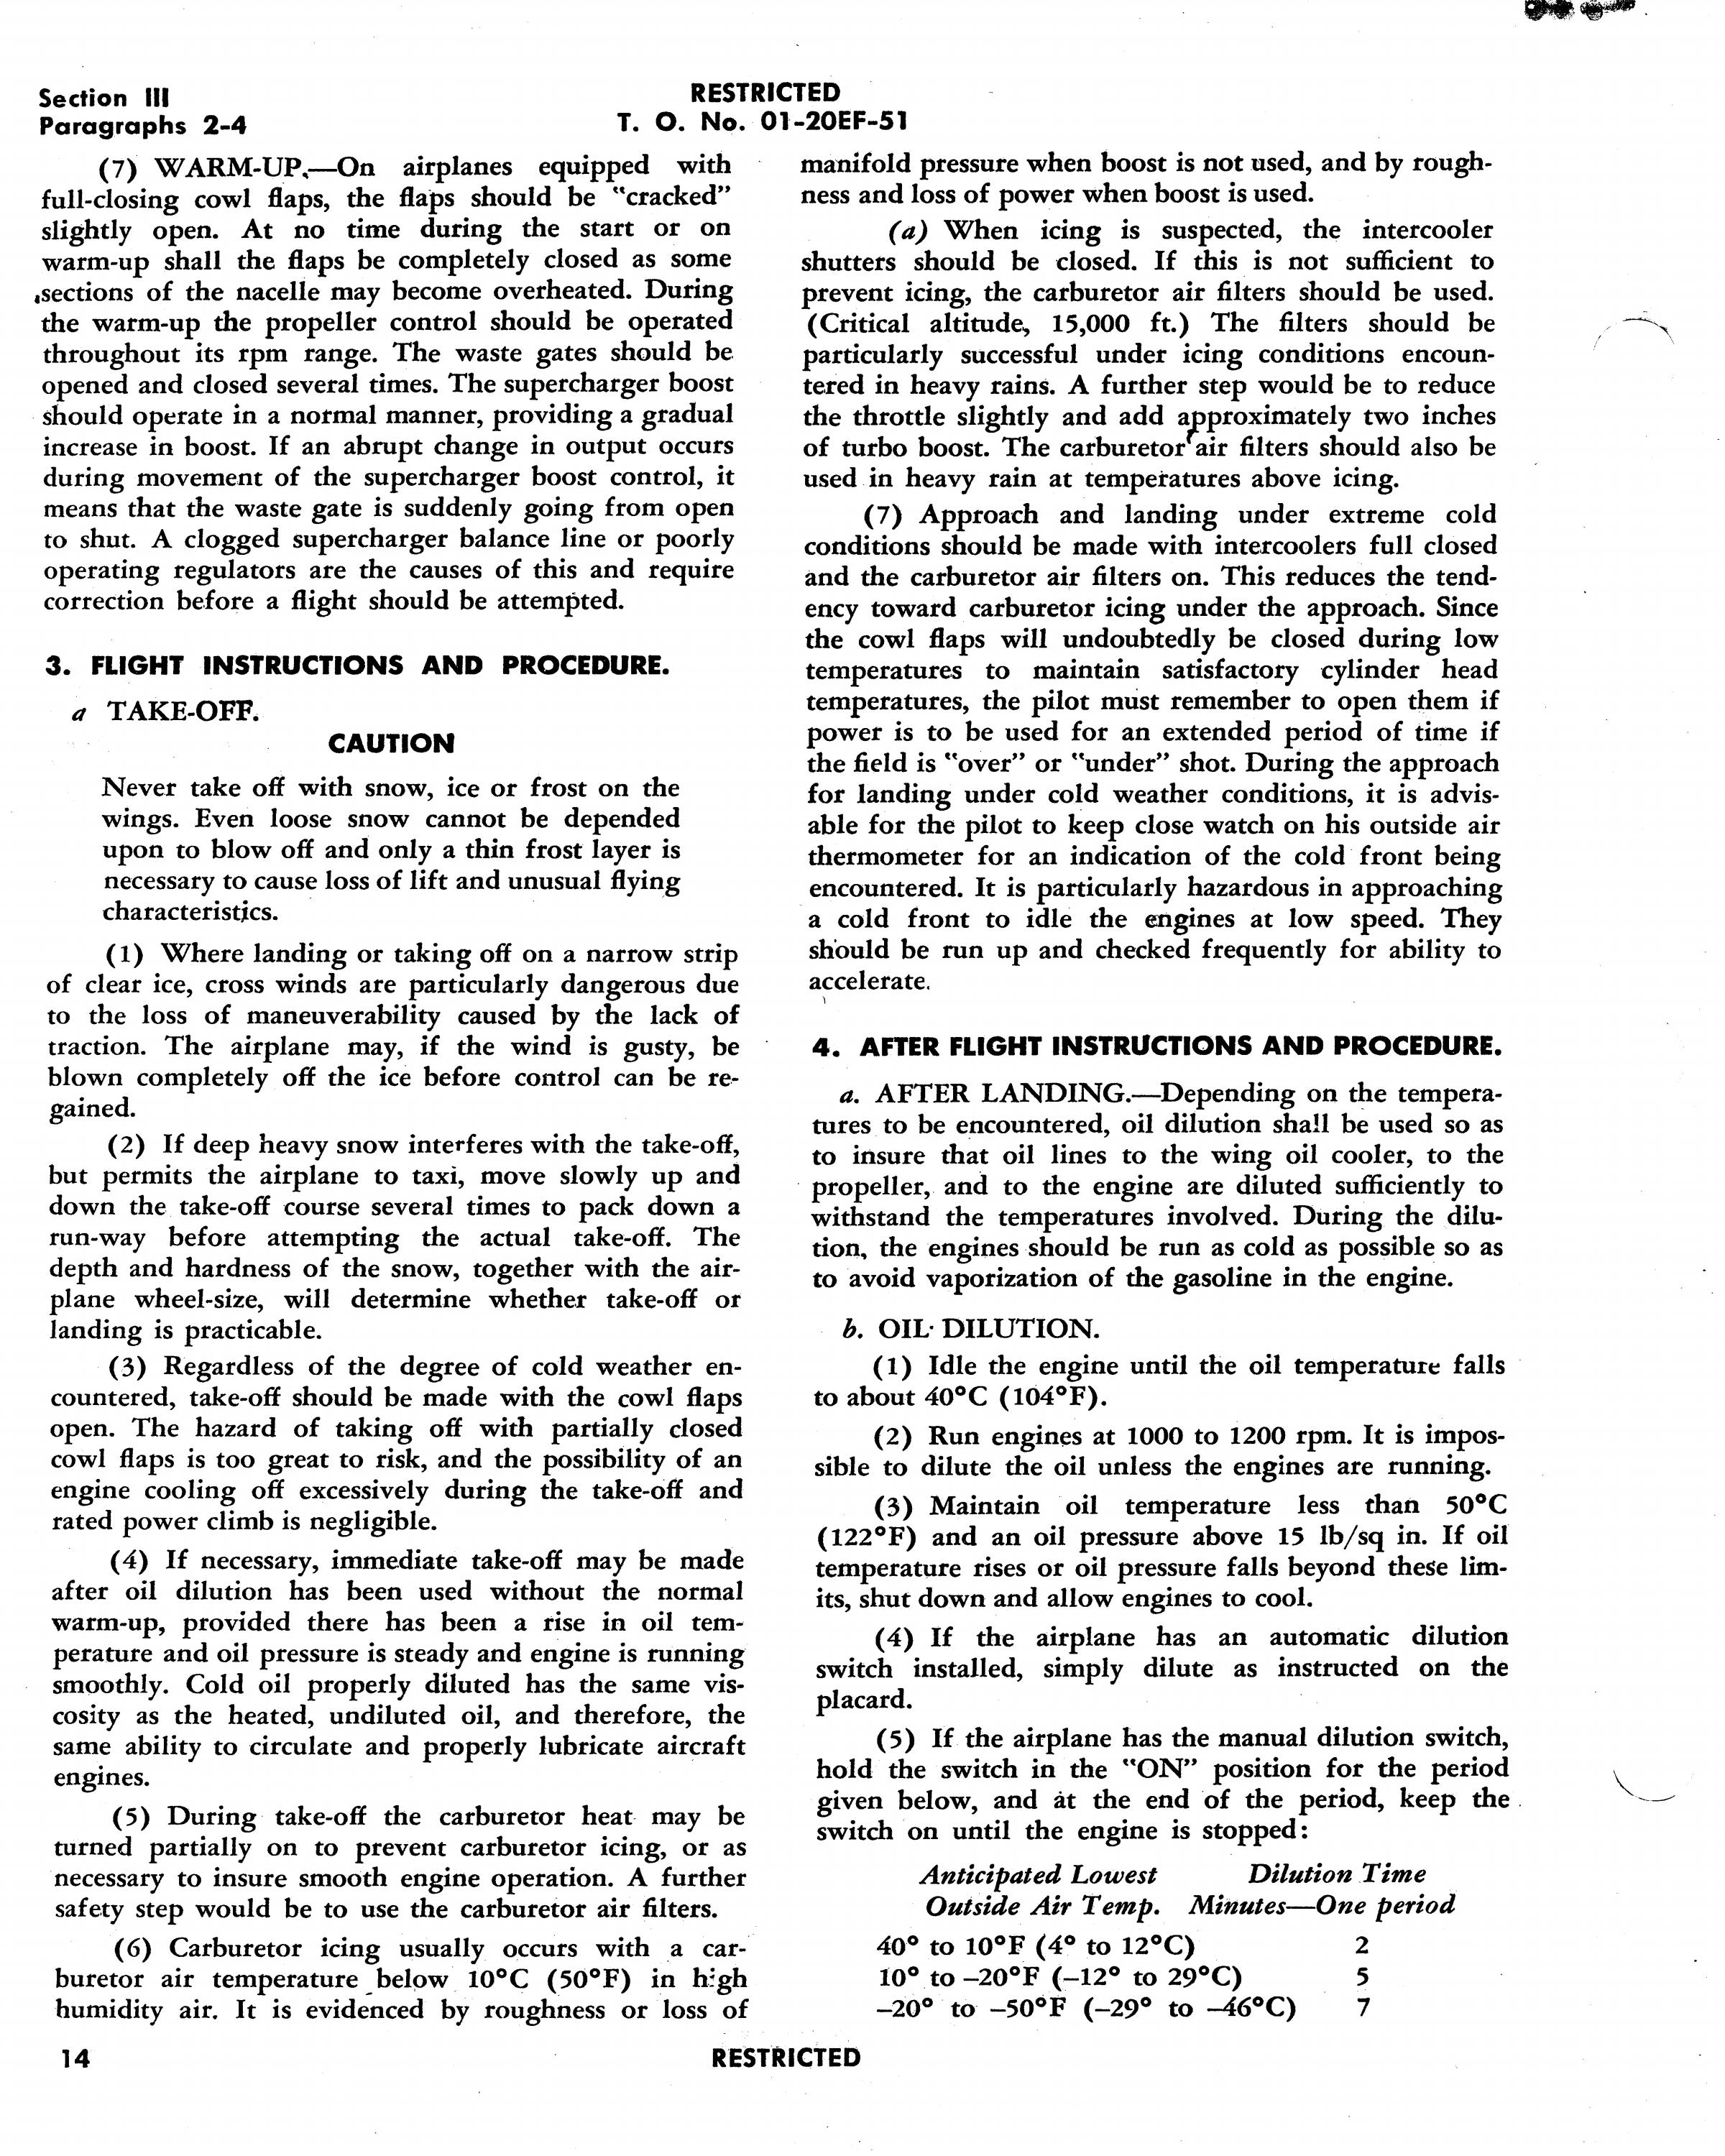 Sample page 18 from AirCorps Library document: Handbook of Cold Weather Operations & Maintenance - B17F, B-17G